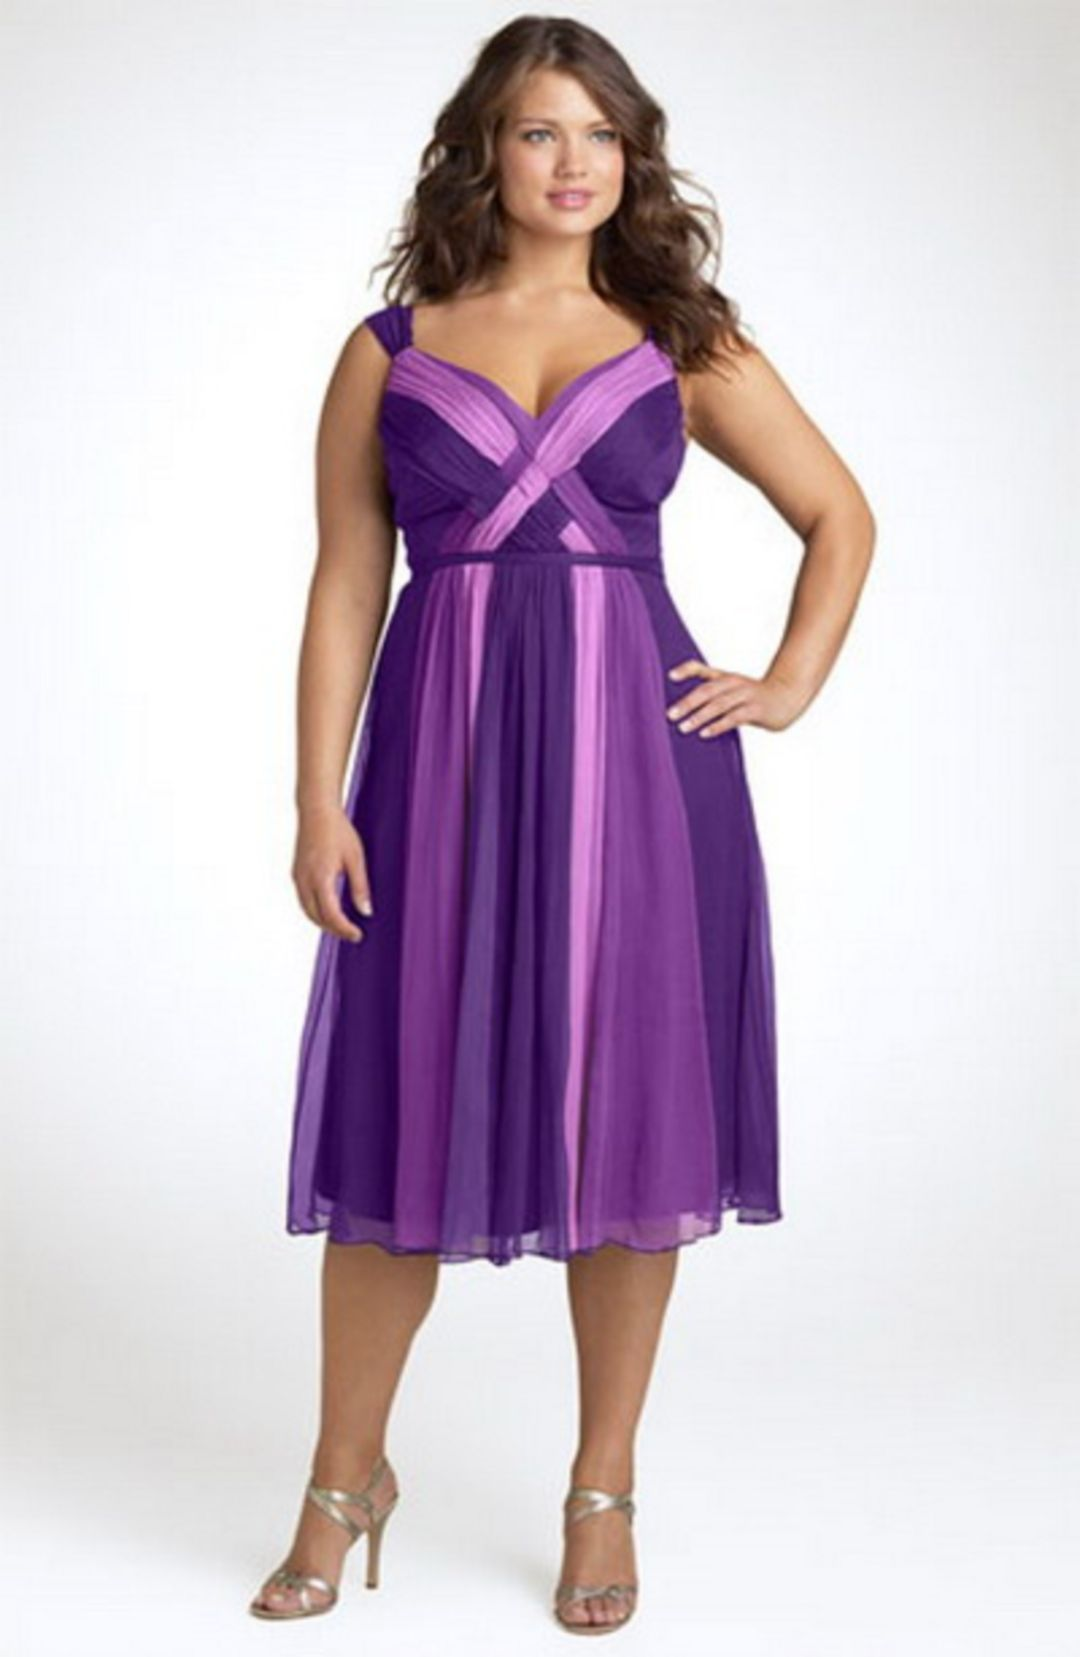 47+ Awesome Plus Size Dresses Collections For Great women | Vestiditos